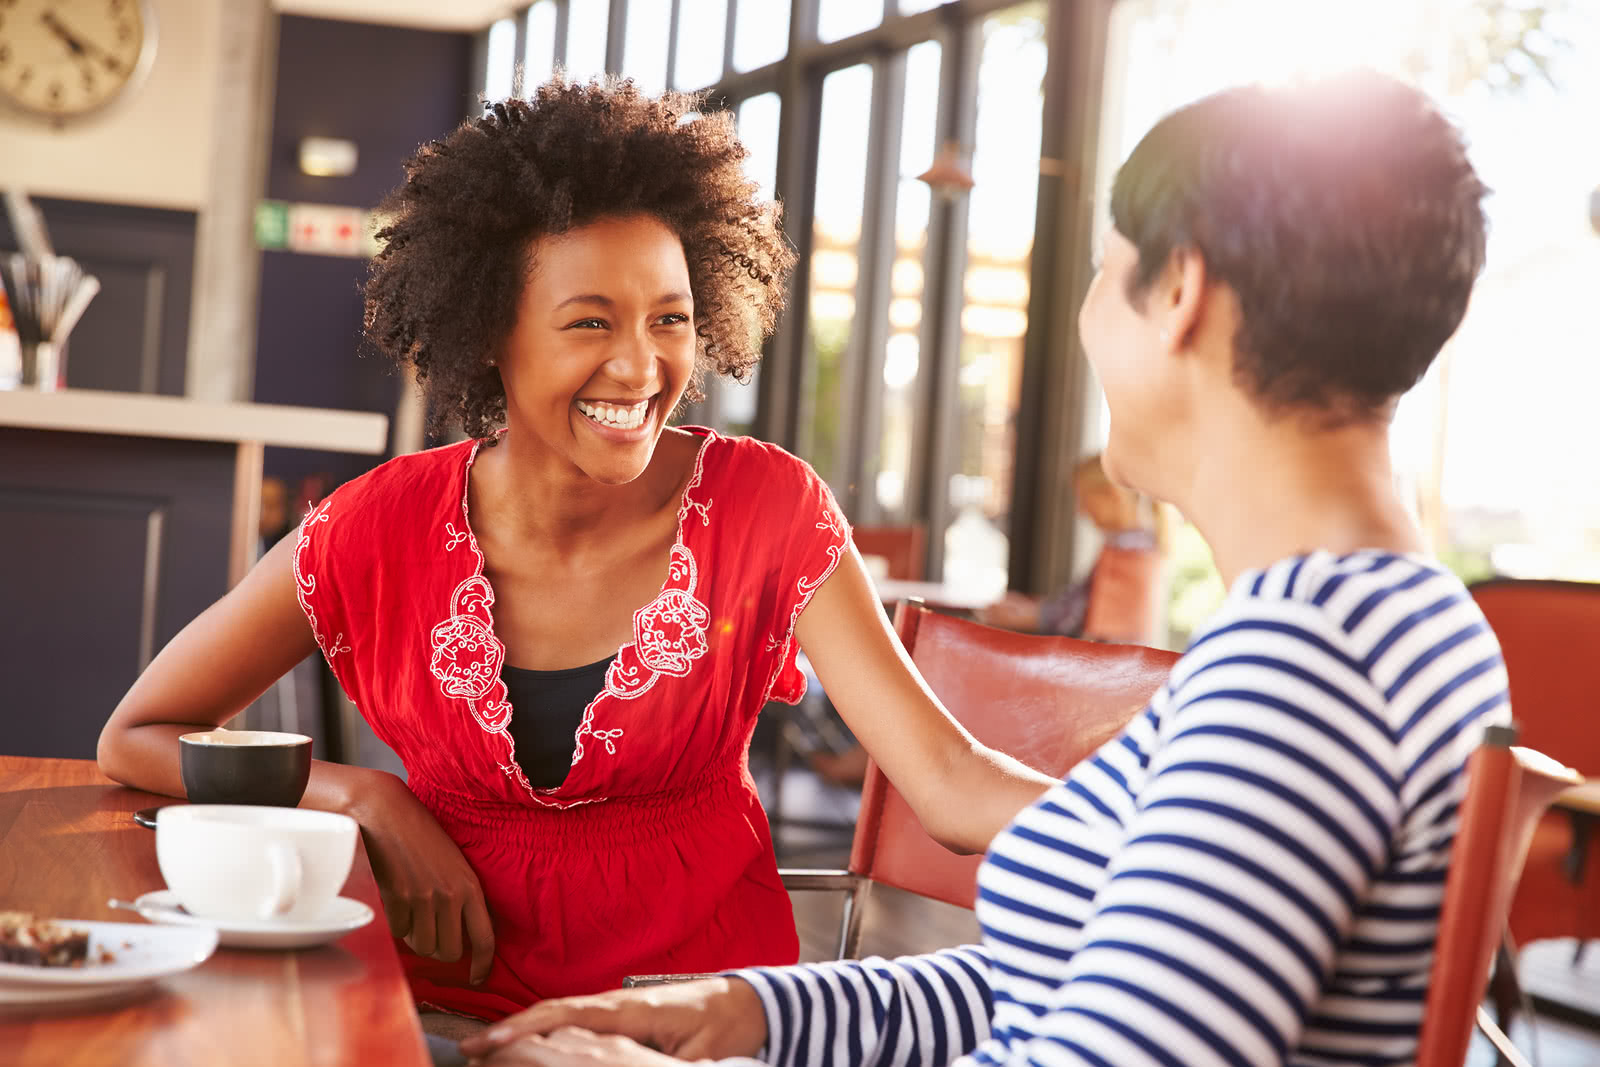 An owner has coffee with a customer on Get to Know Your Customers Day